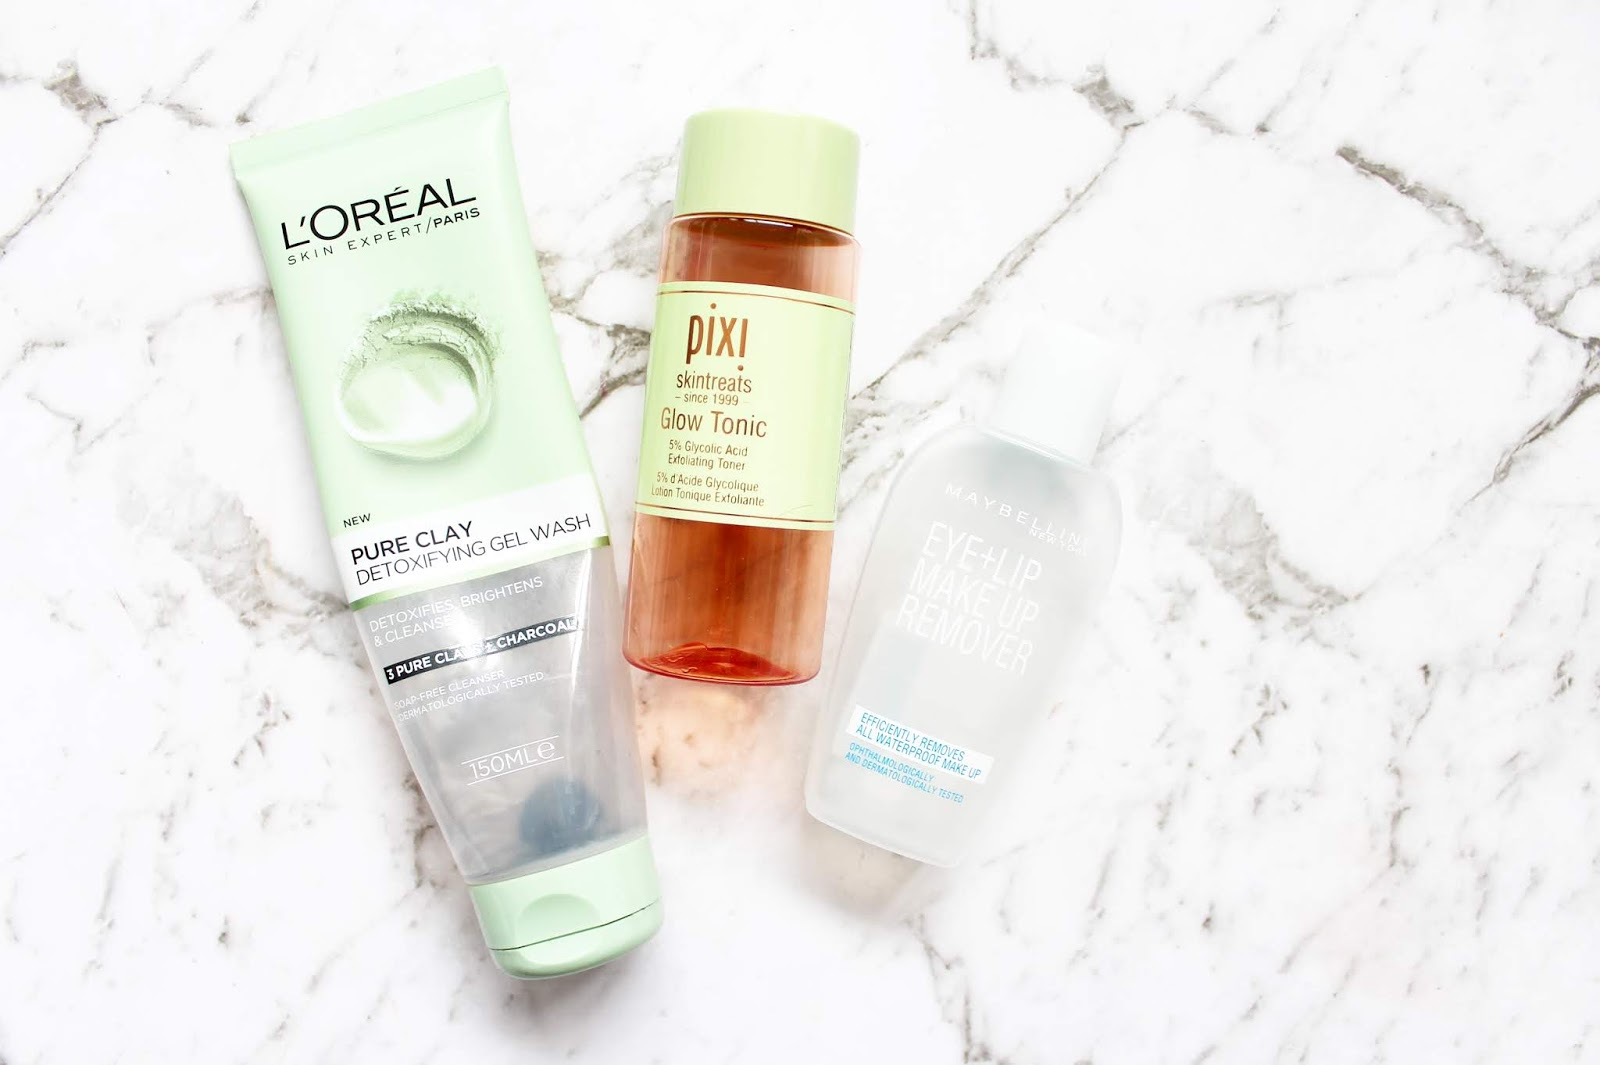 EMPTIES | June '18 - Pixi, Rimmel, Covergirl, L'Oreal, Tonymoly, 111Skin + More - CassandraMyee